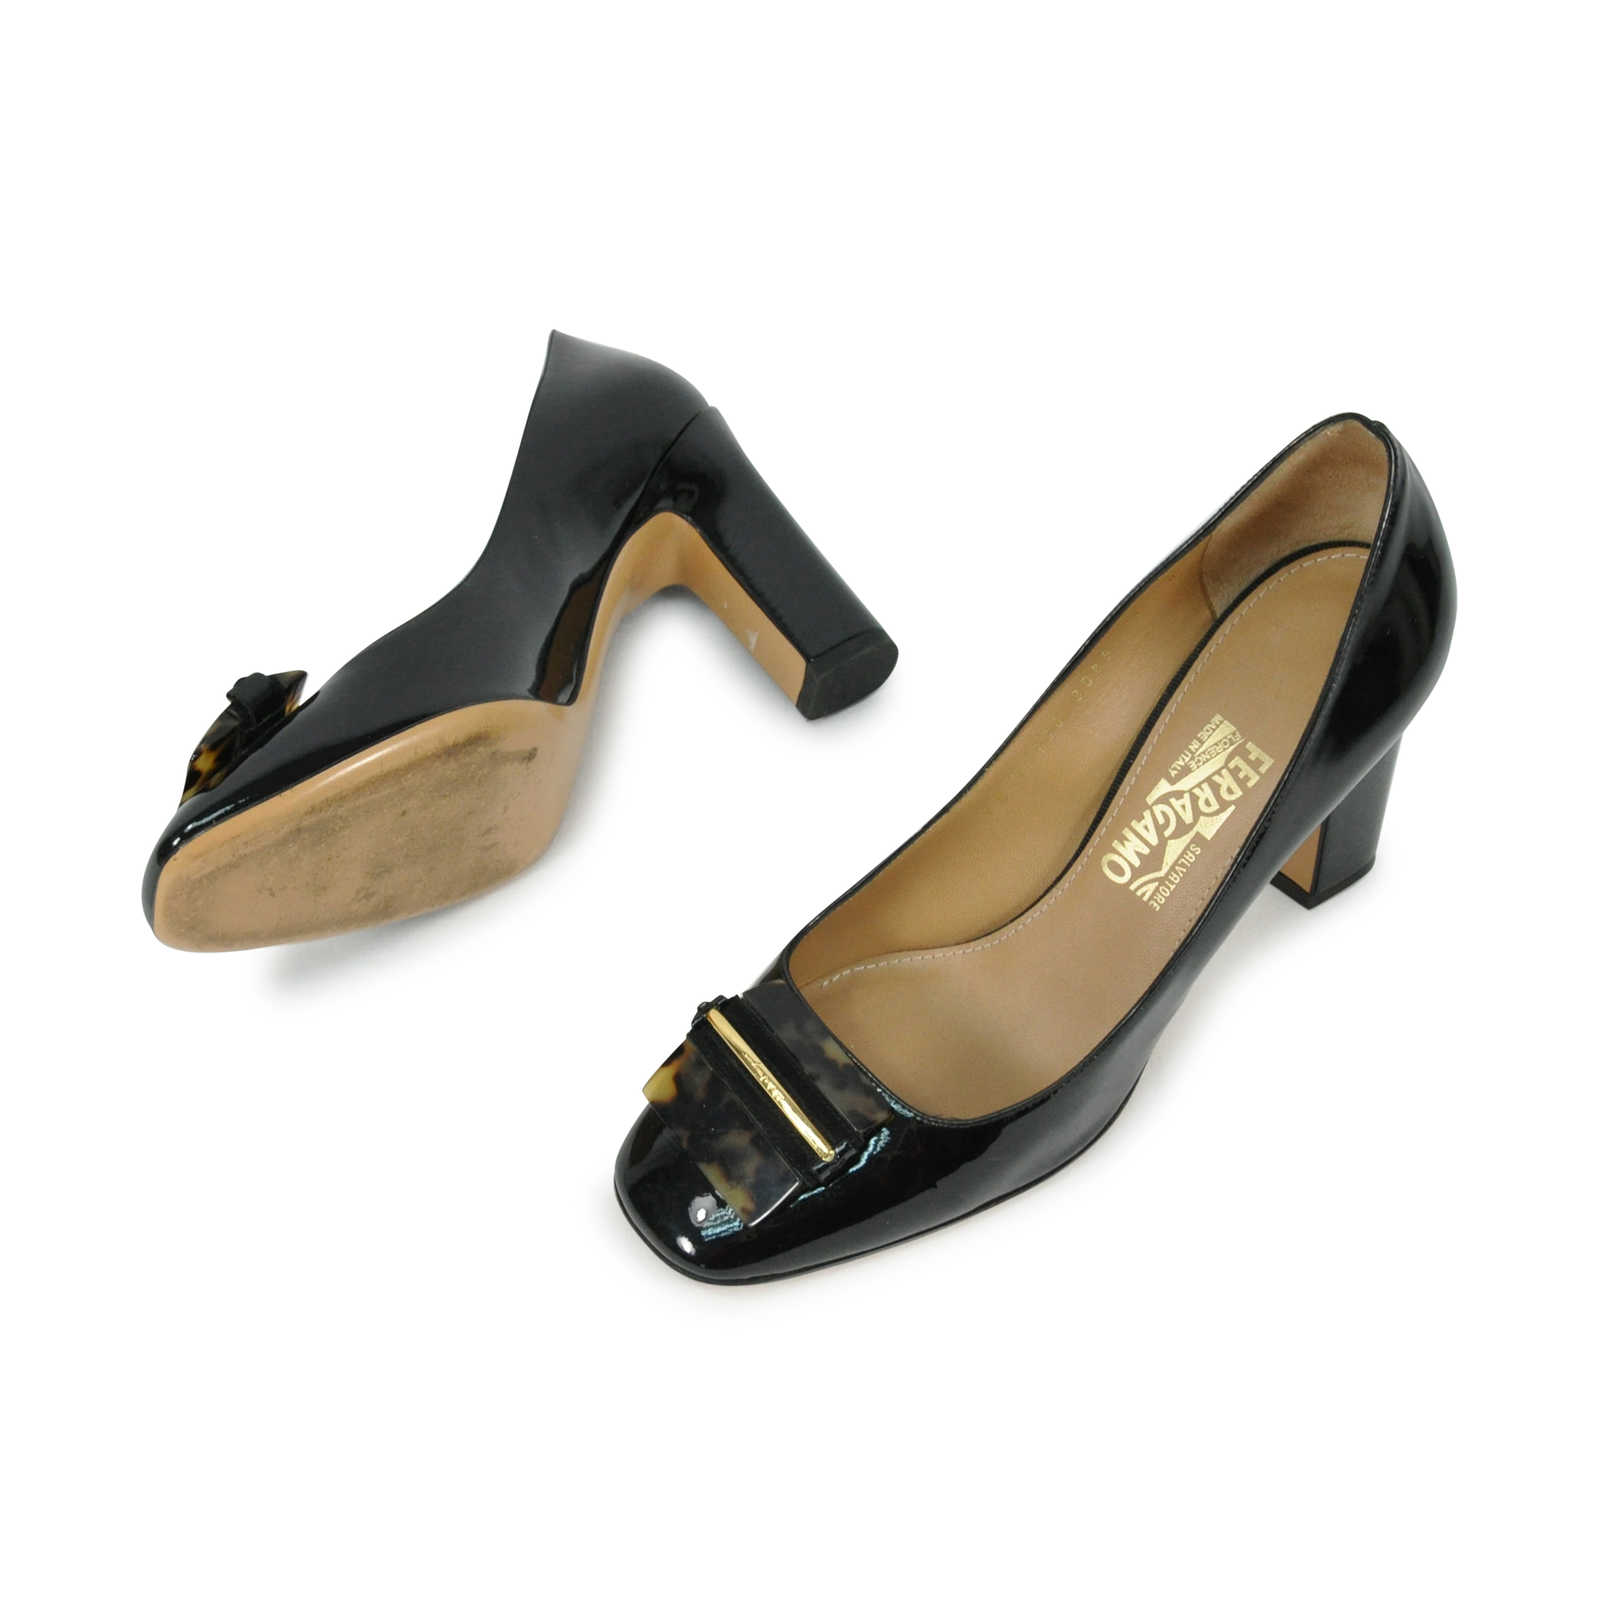 get to buy clearance genuine Salvatore Ferragamo Suede Buckle Pumps yHreJg6HnO